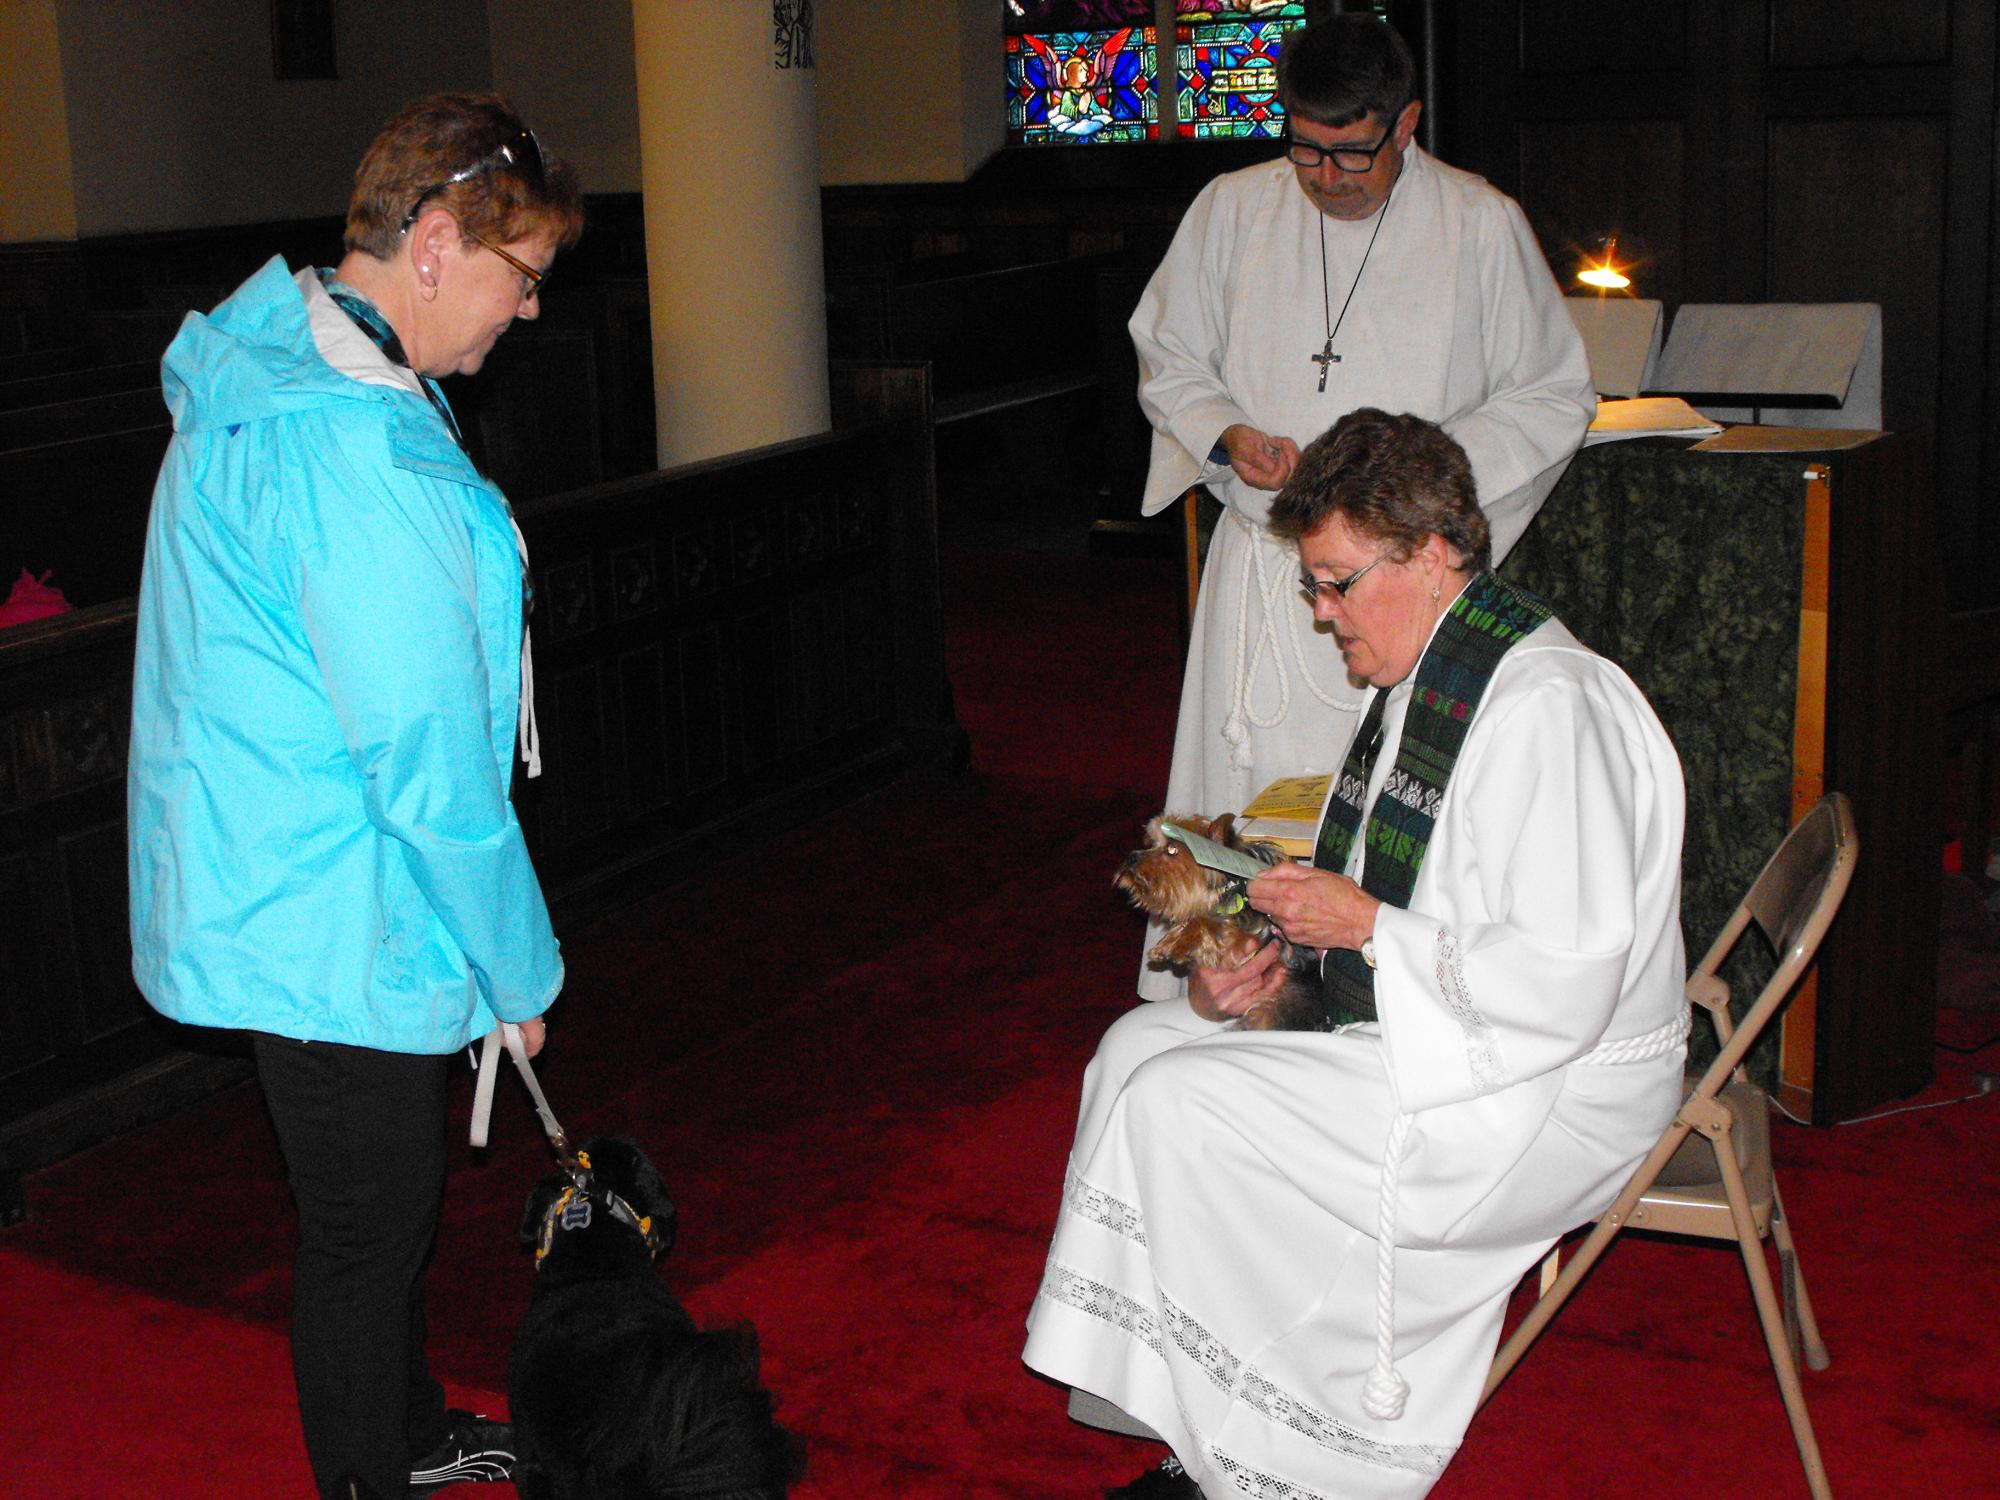 Blessing_of_the_Animals_10-4-15_067.JPG